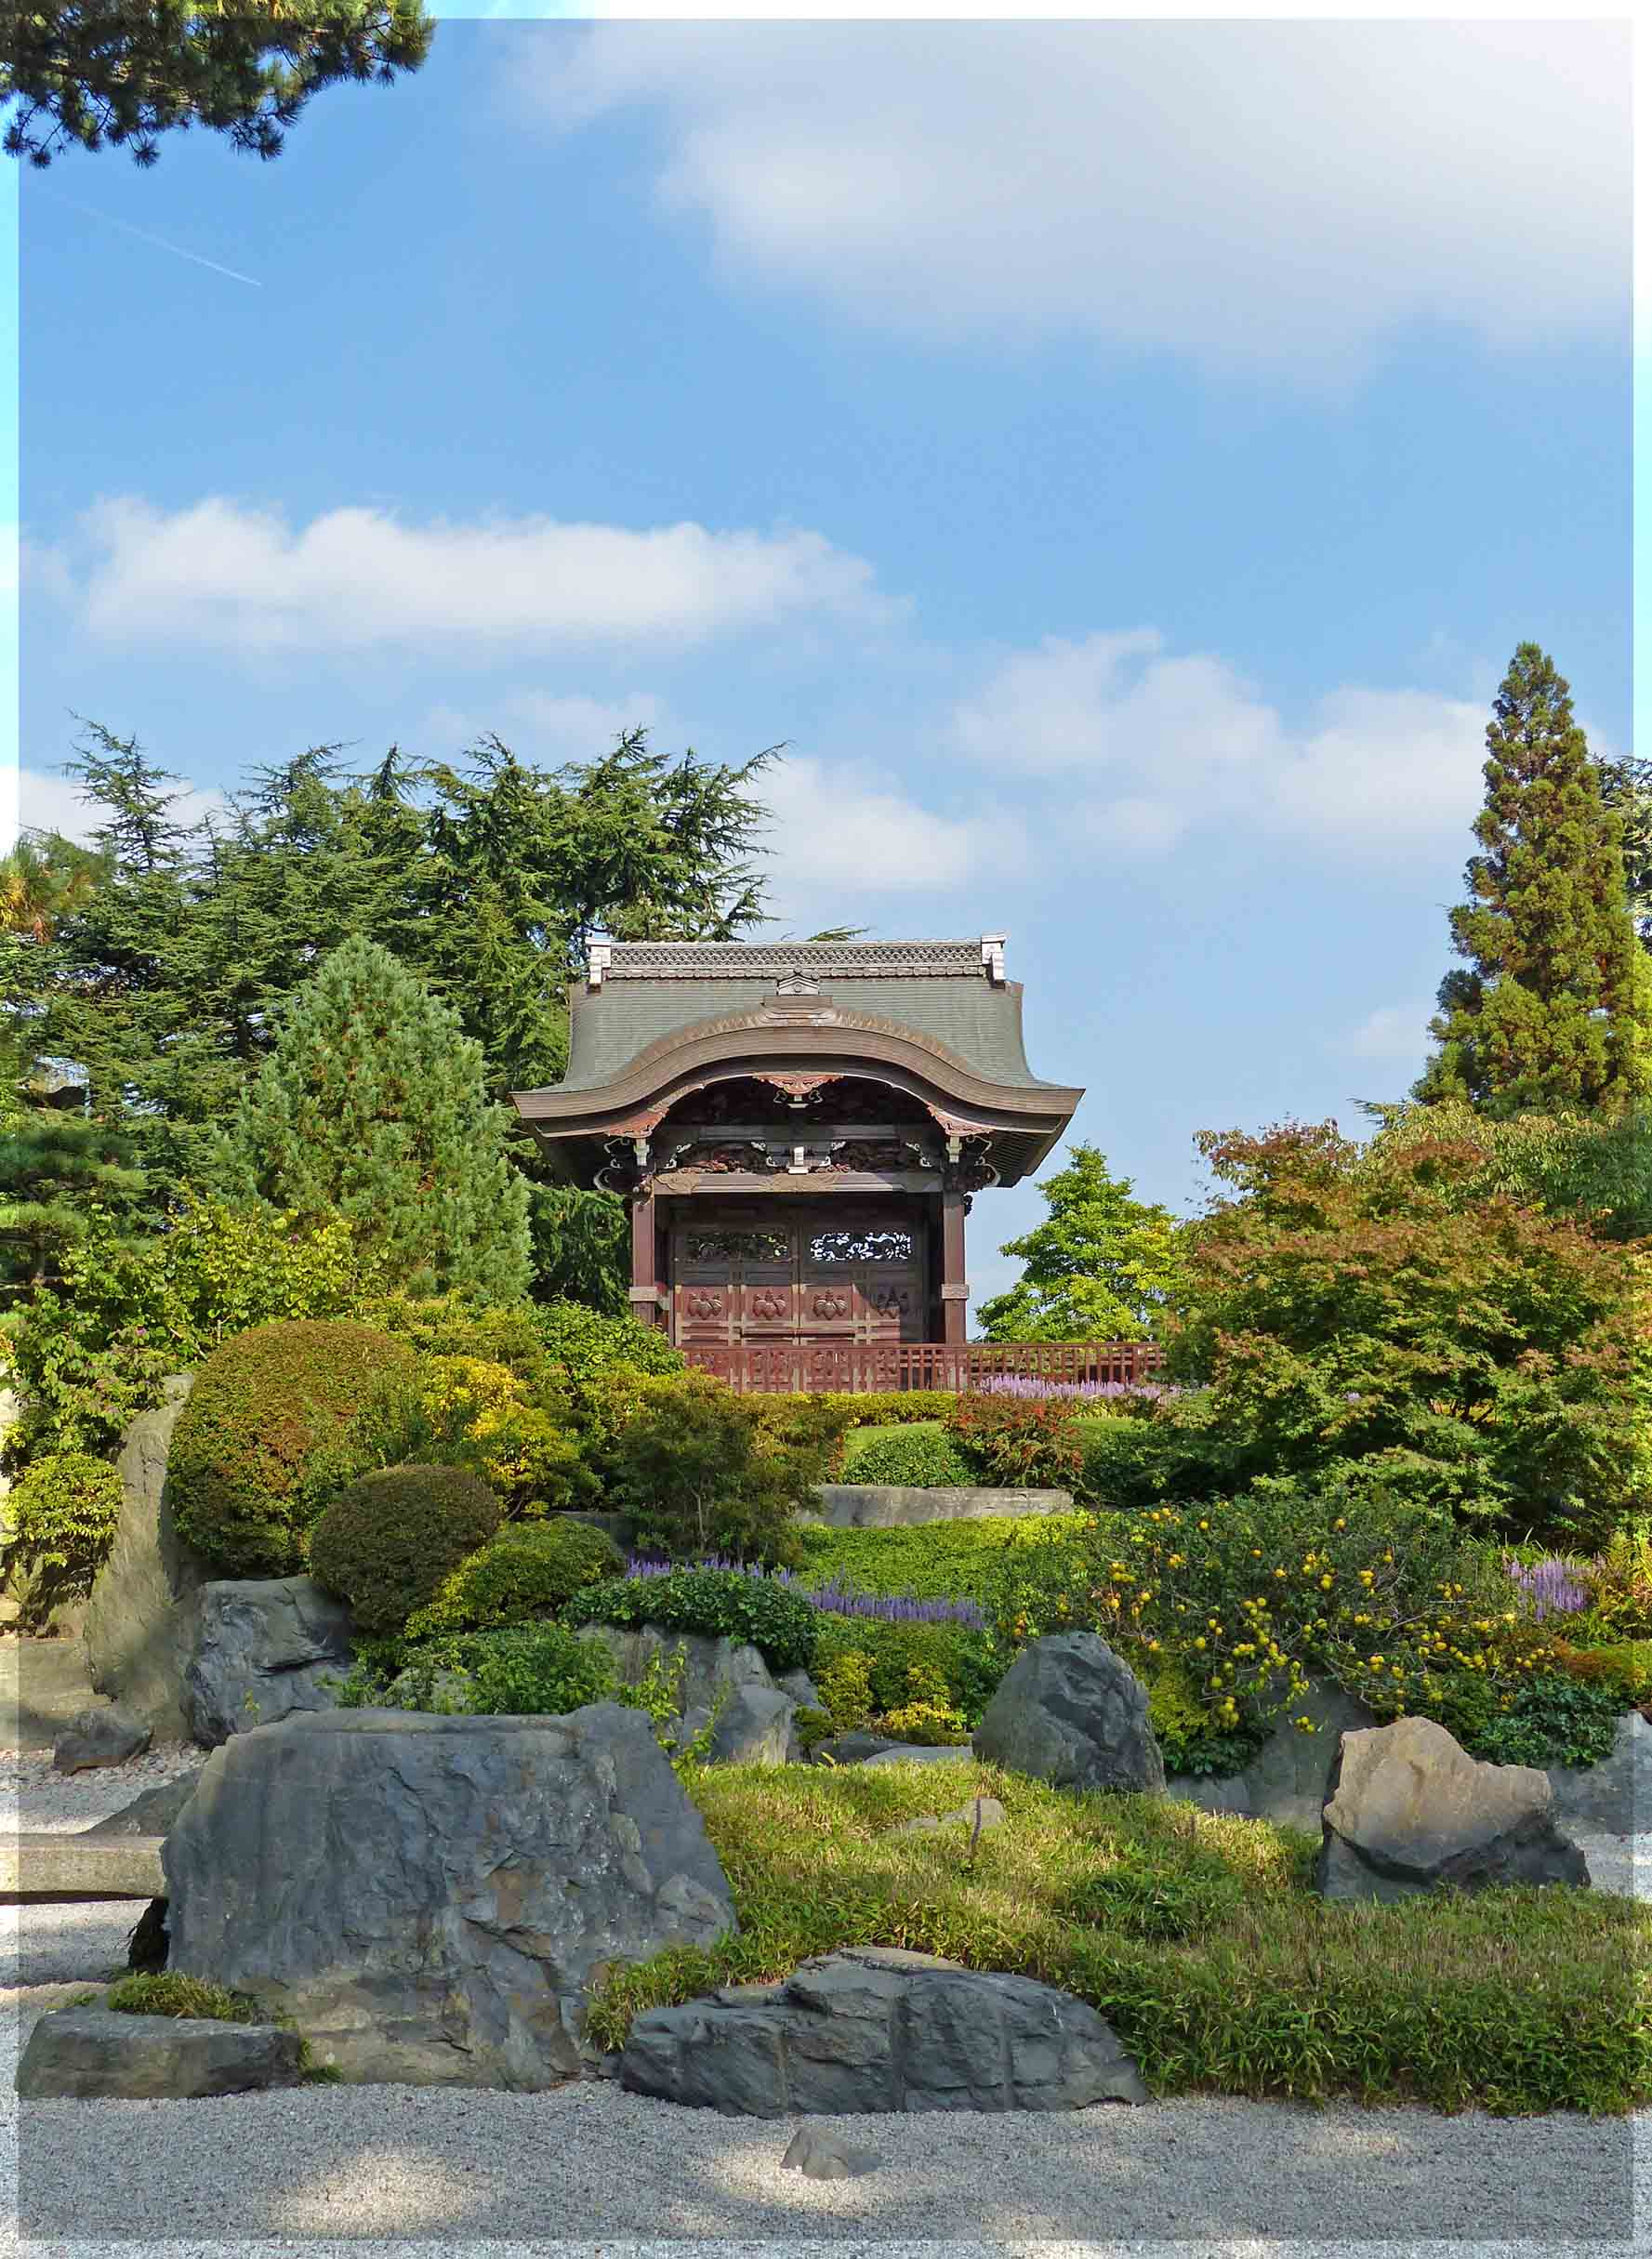 Japanese style garden with rocks, gravel and a small building